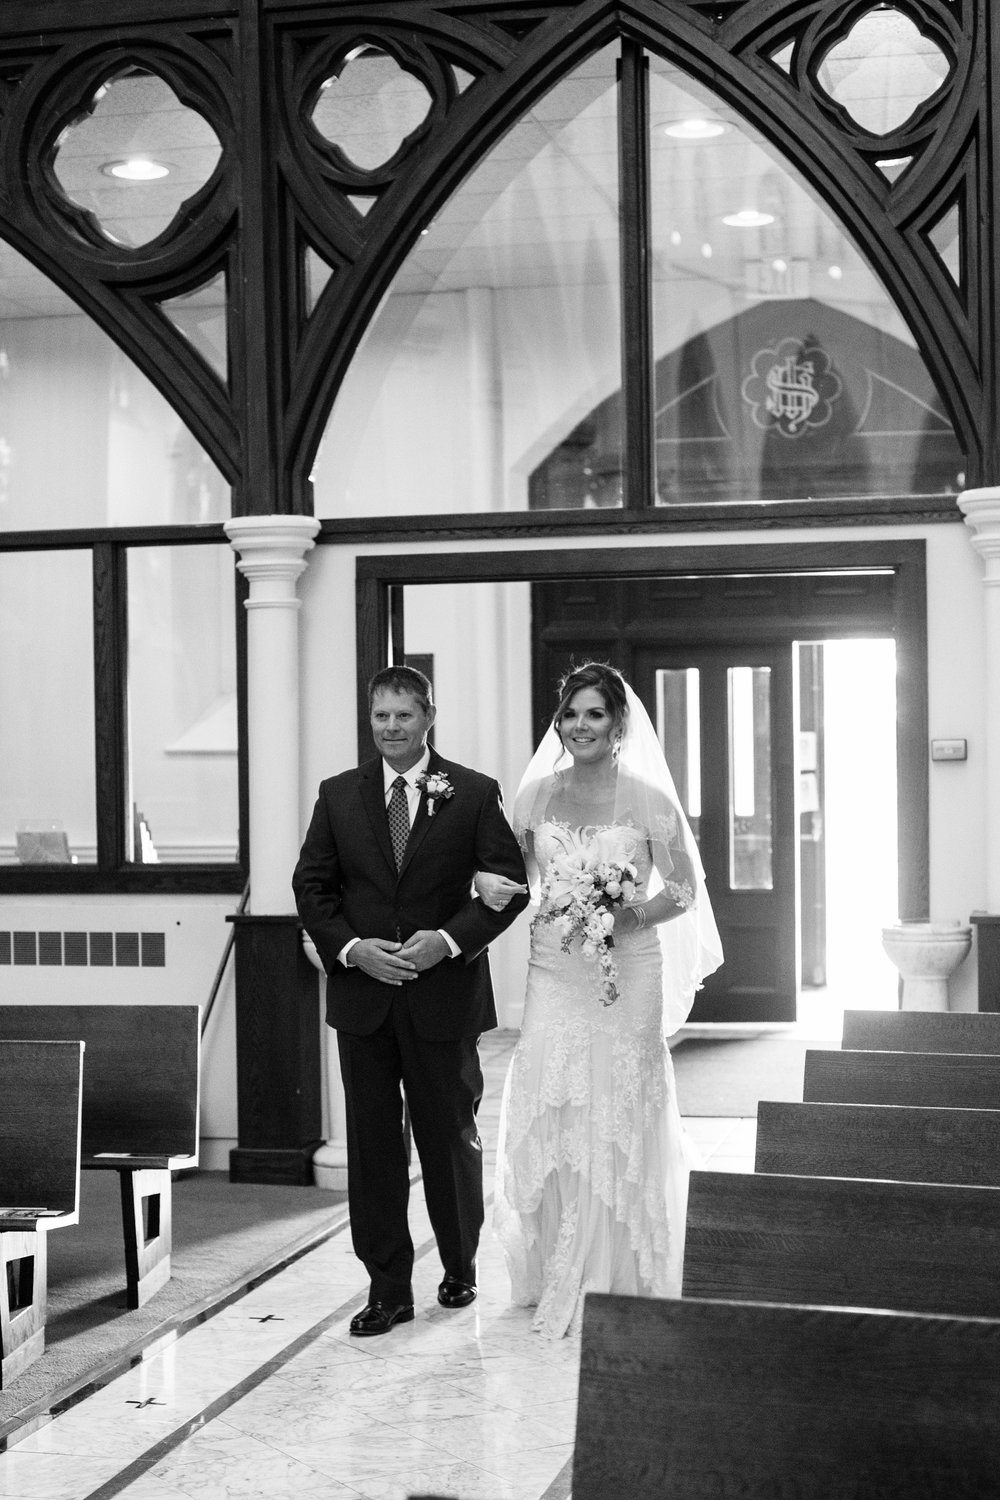 Cathedral of immaculate conception wedding